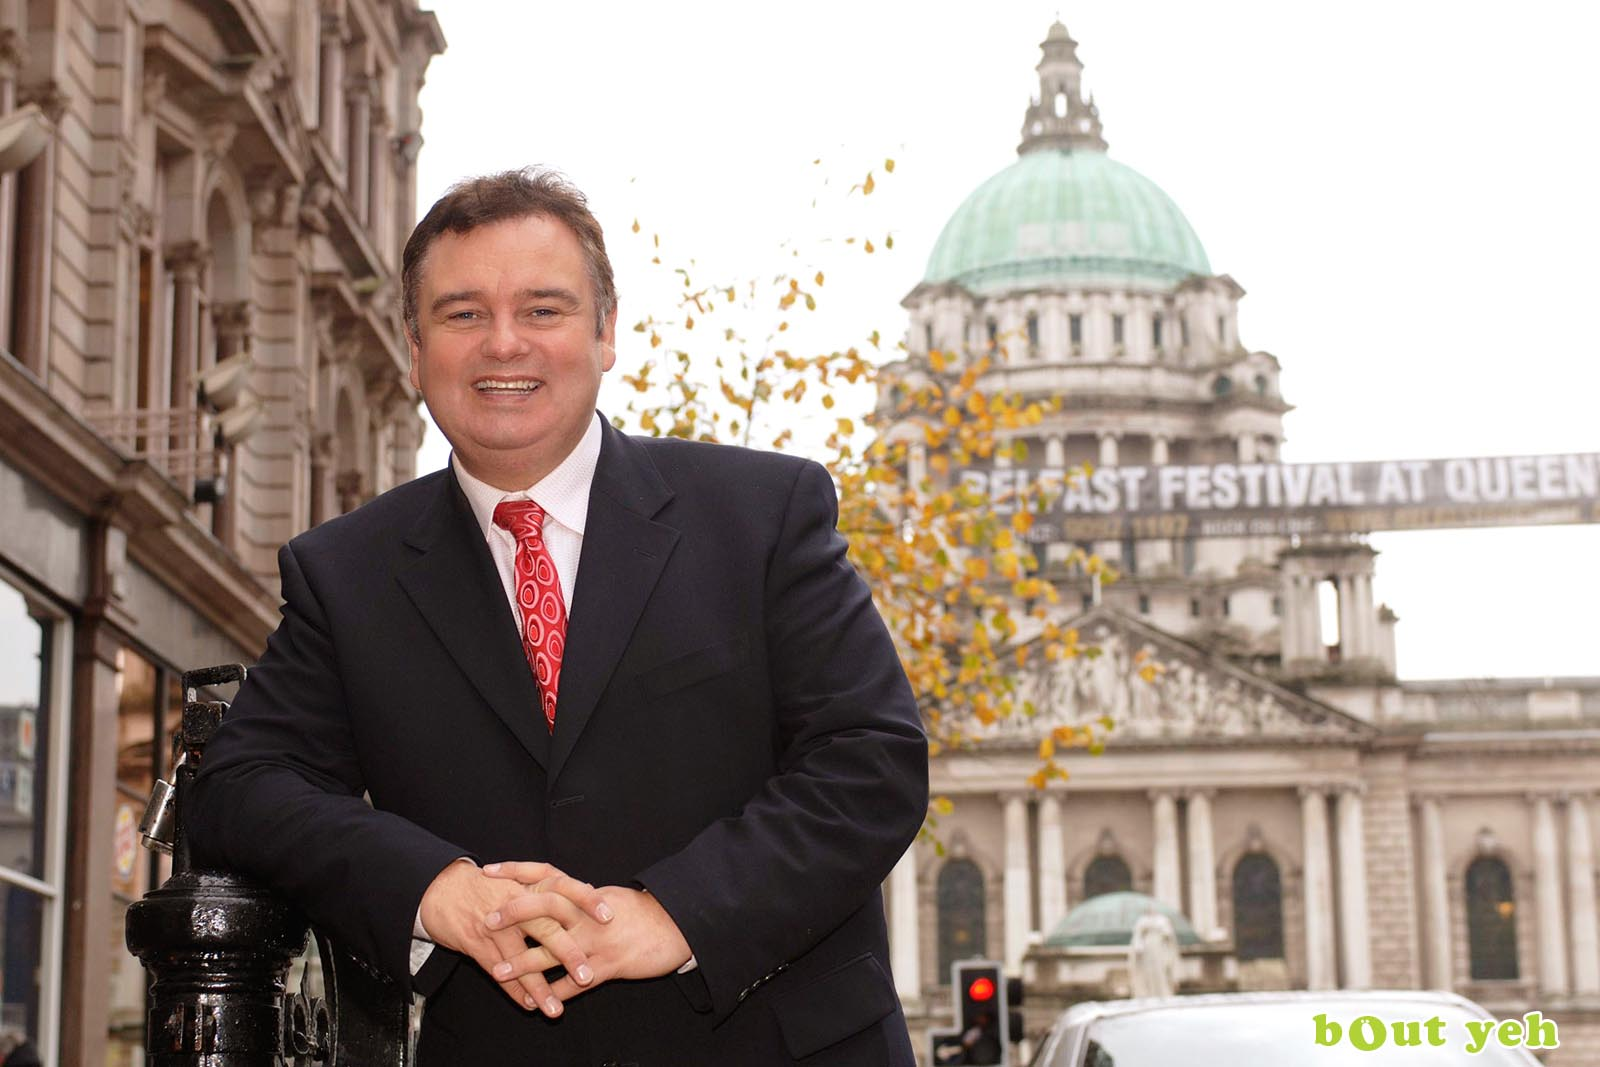 PR photographers Belfast portfolio photo 6140 of celebrity Eamonn Holmes in Belfast - Bout Yeh photography and video production services Belfast, Northern Ireland